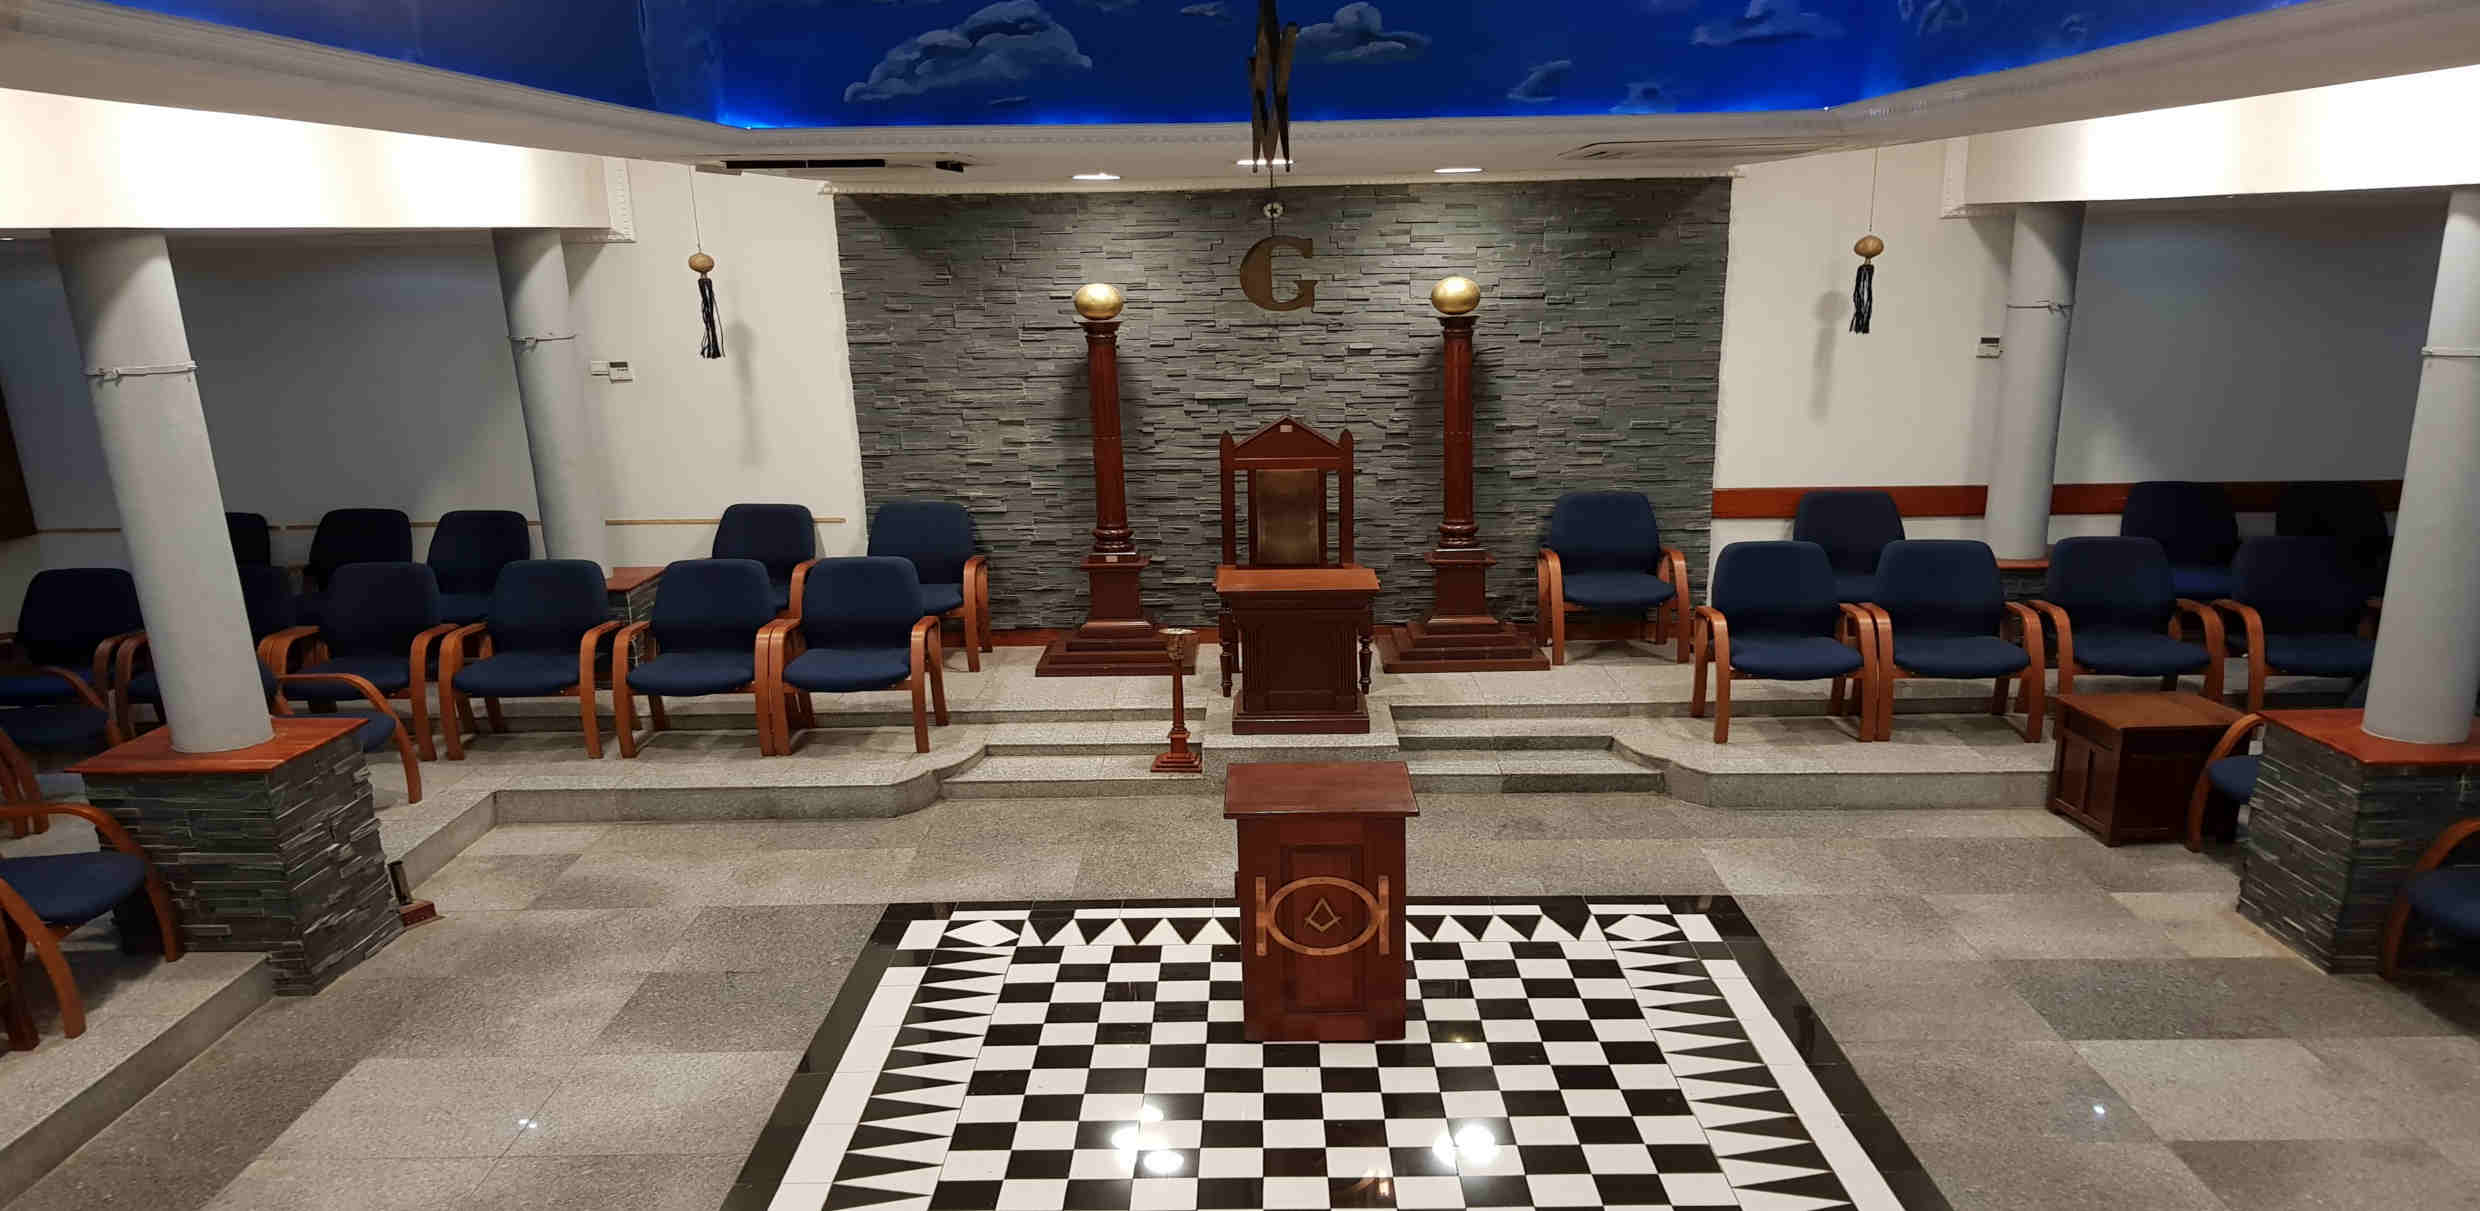 Freemasonry in Zambia English Constitution - The official